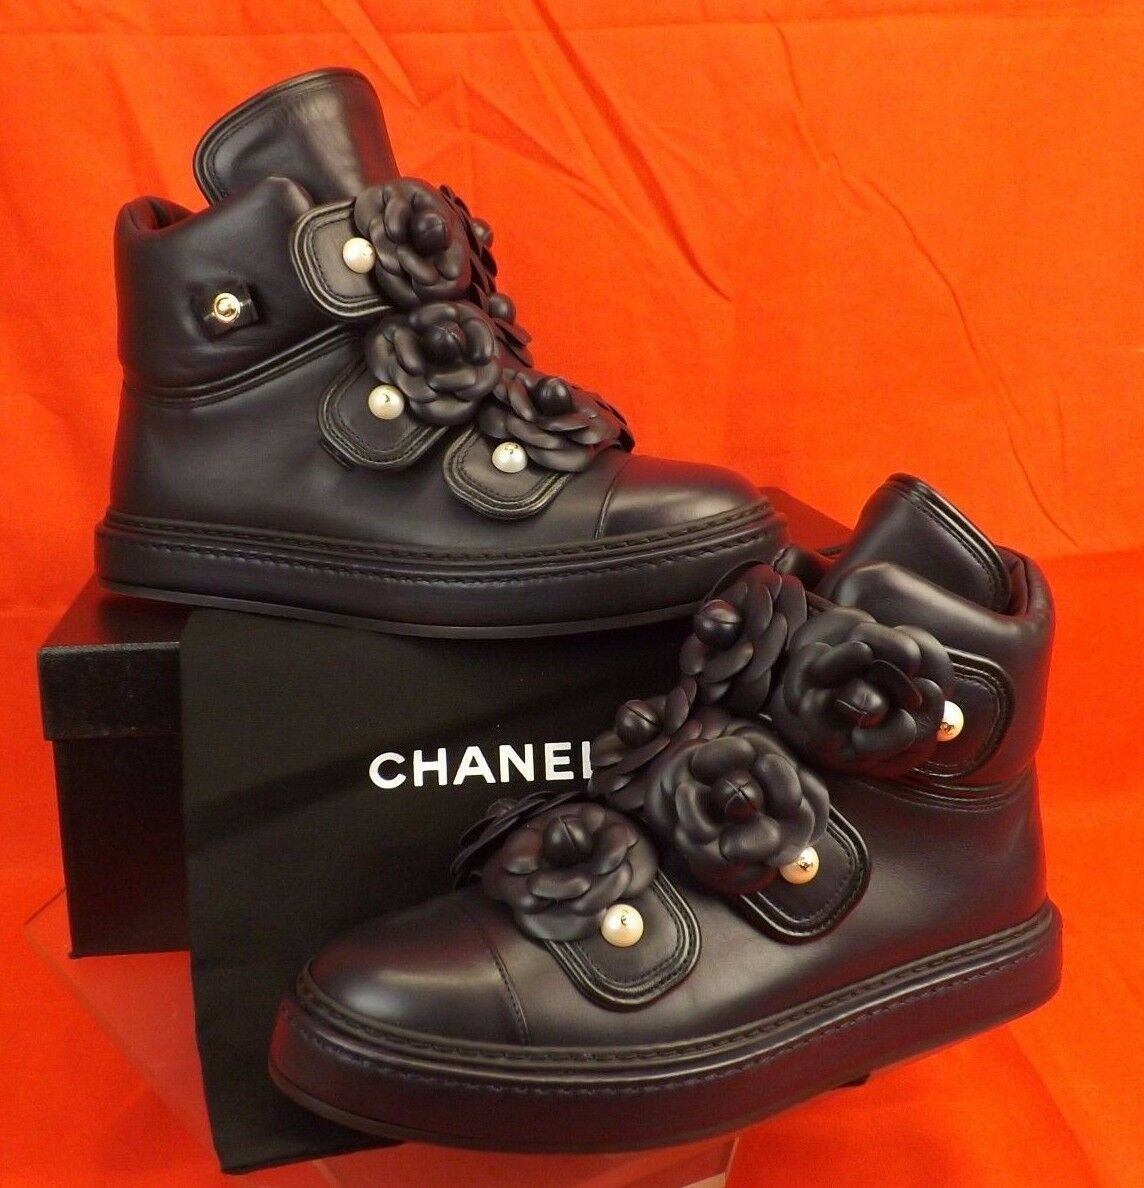 16P NIB CHANEL NAVY LEATHER CAMELLIA FLOWERS PEARLS CC LOGO HI TOP SNEAKERS 38